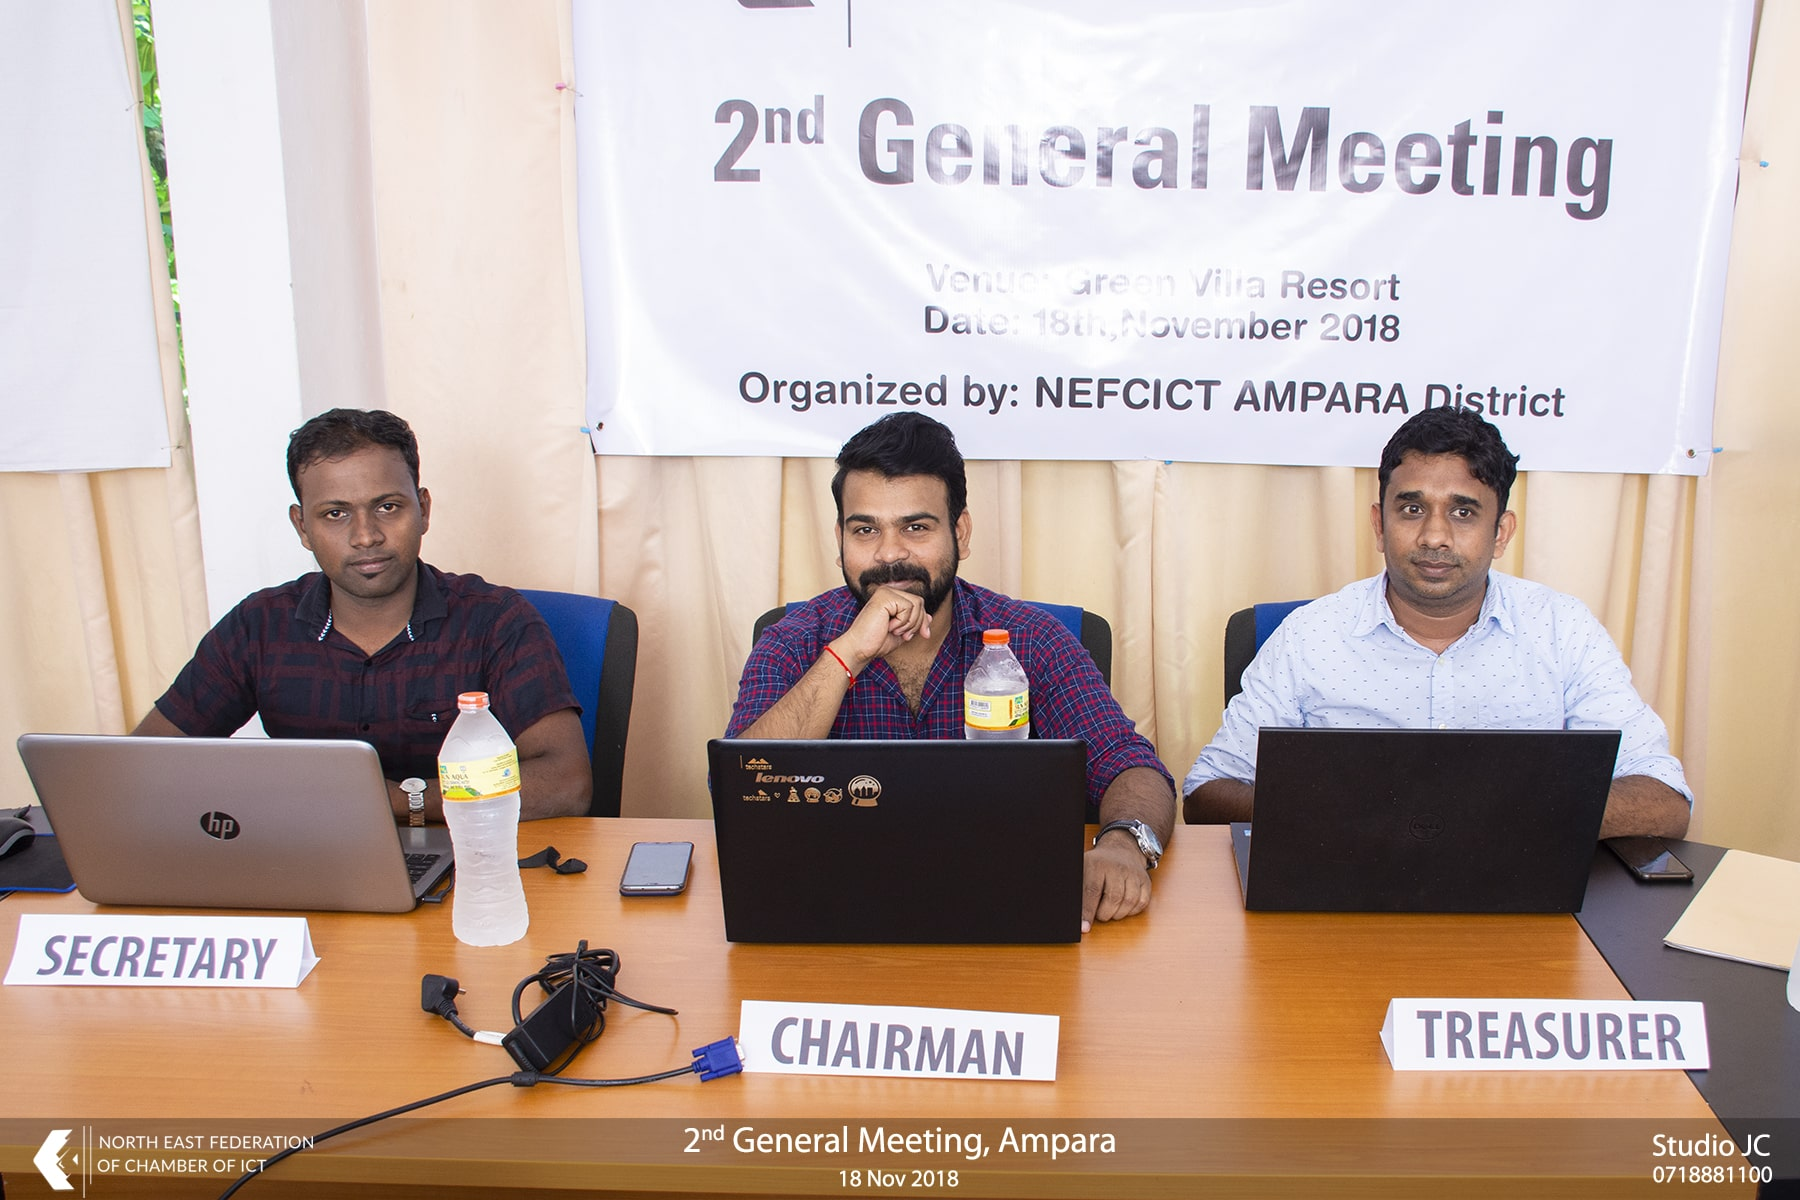 Second General Meeting of North East Federation of Chamber of ICT 15